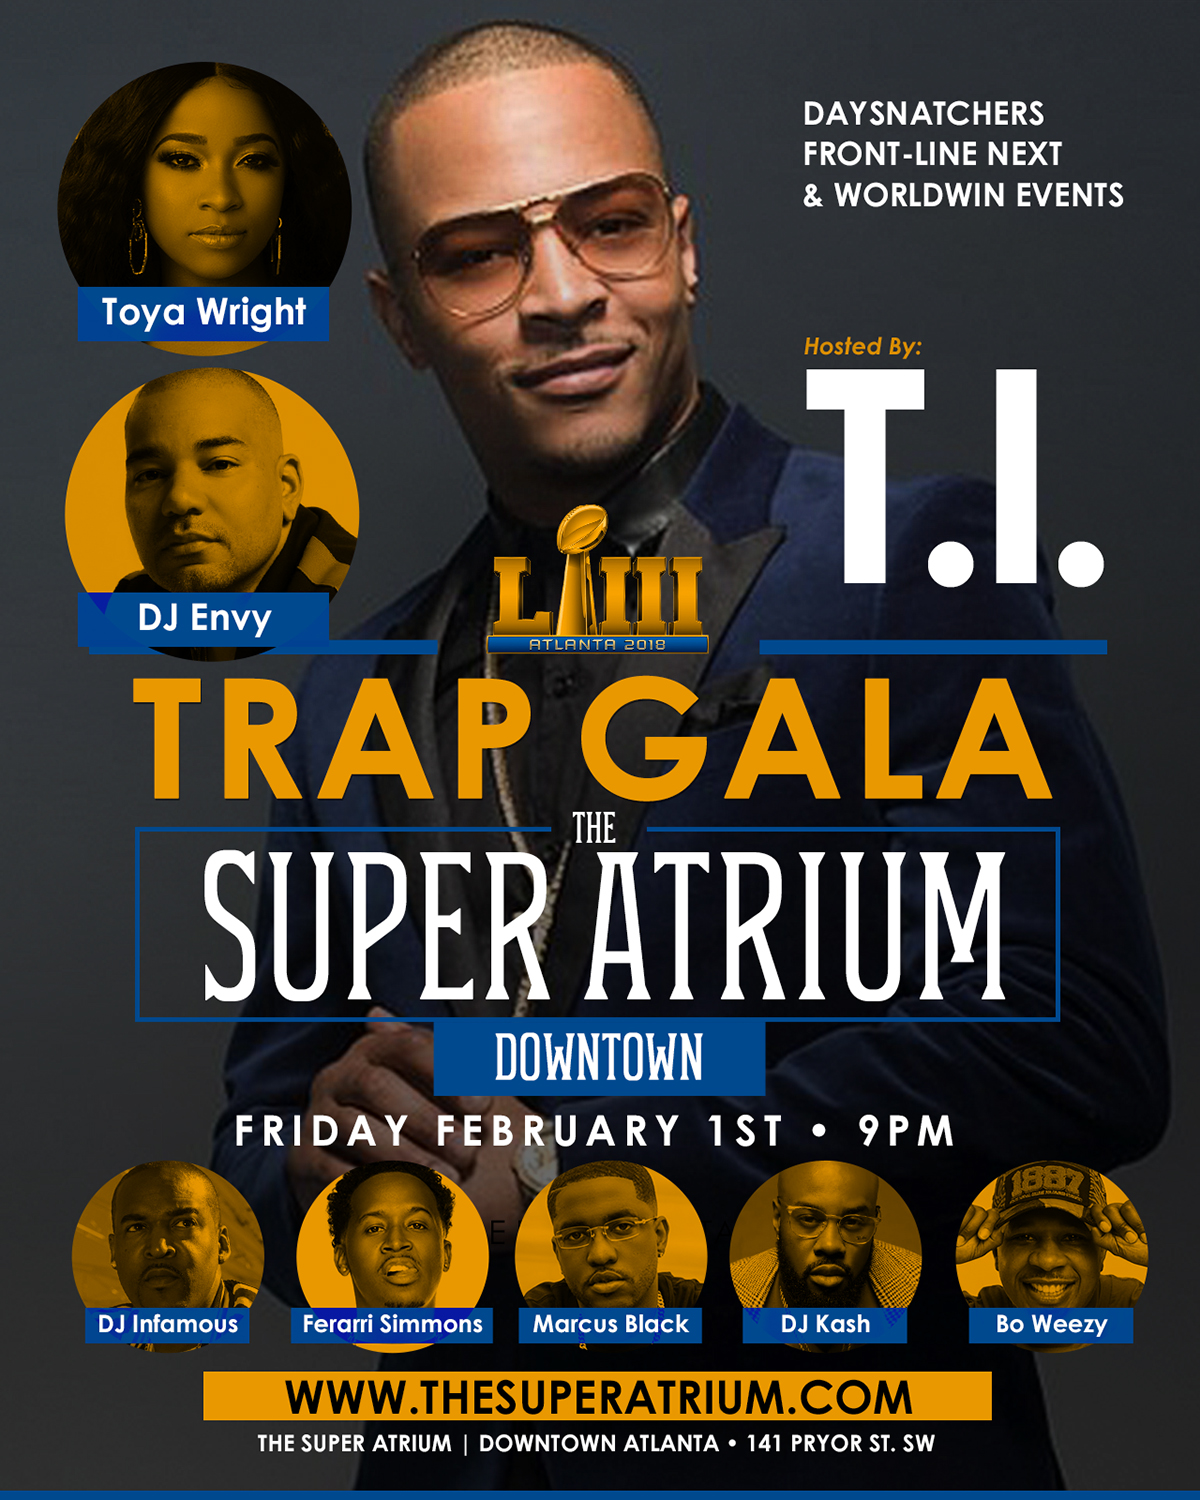 Trap Gala, One of Biggest Events Around To Grace LA, Miami, Orlando and Many Other Cities, Will be Hosted by T.I., Toya Carter, Ferrari Simmons & Many More Artists, Athletes and Actors TBA!